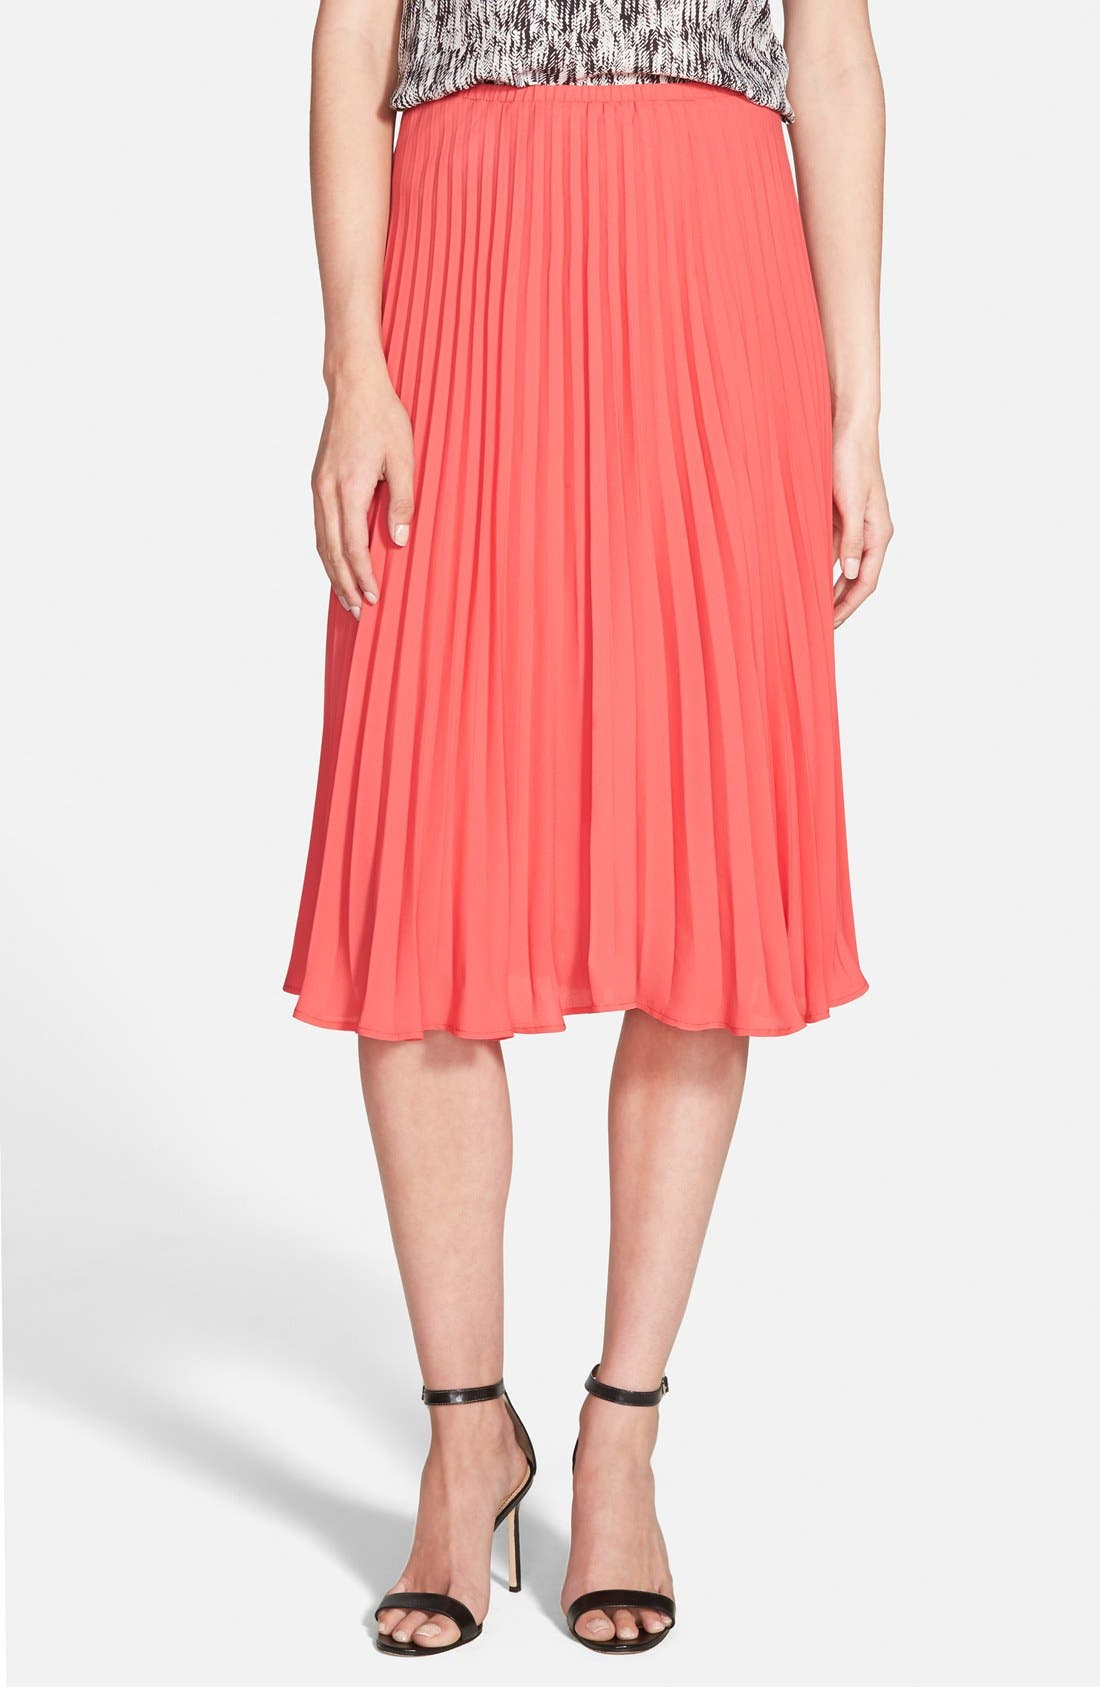 Alternate Image 1 Selected - cupcakes and cashmere 'Santa Ana' Pleated Skirt